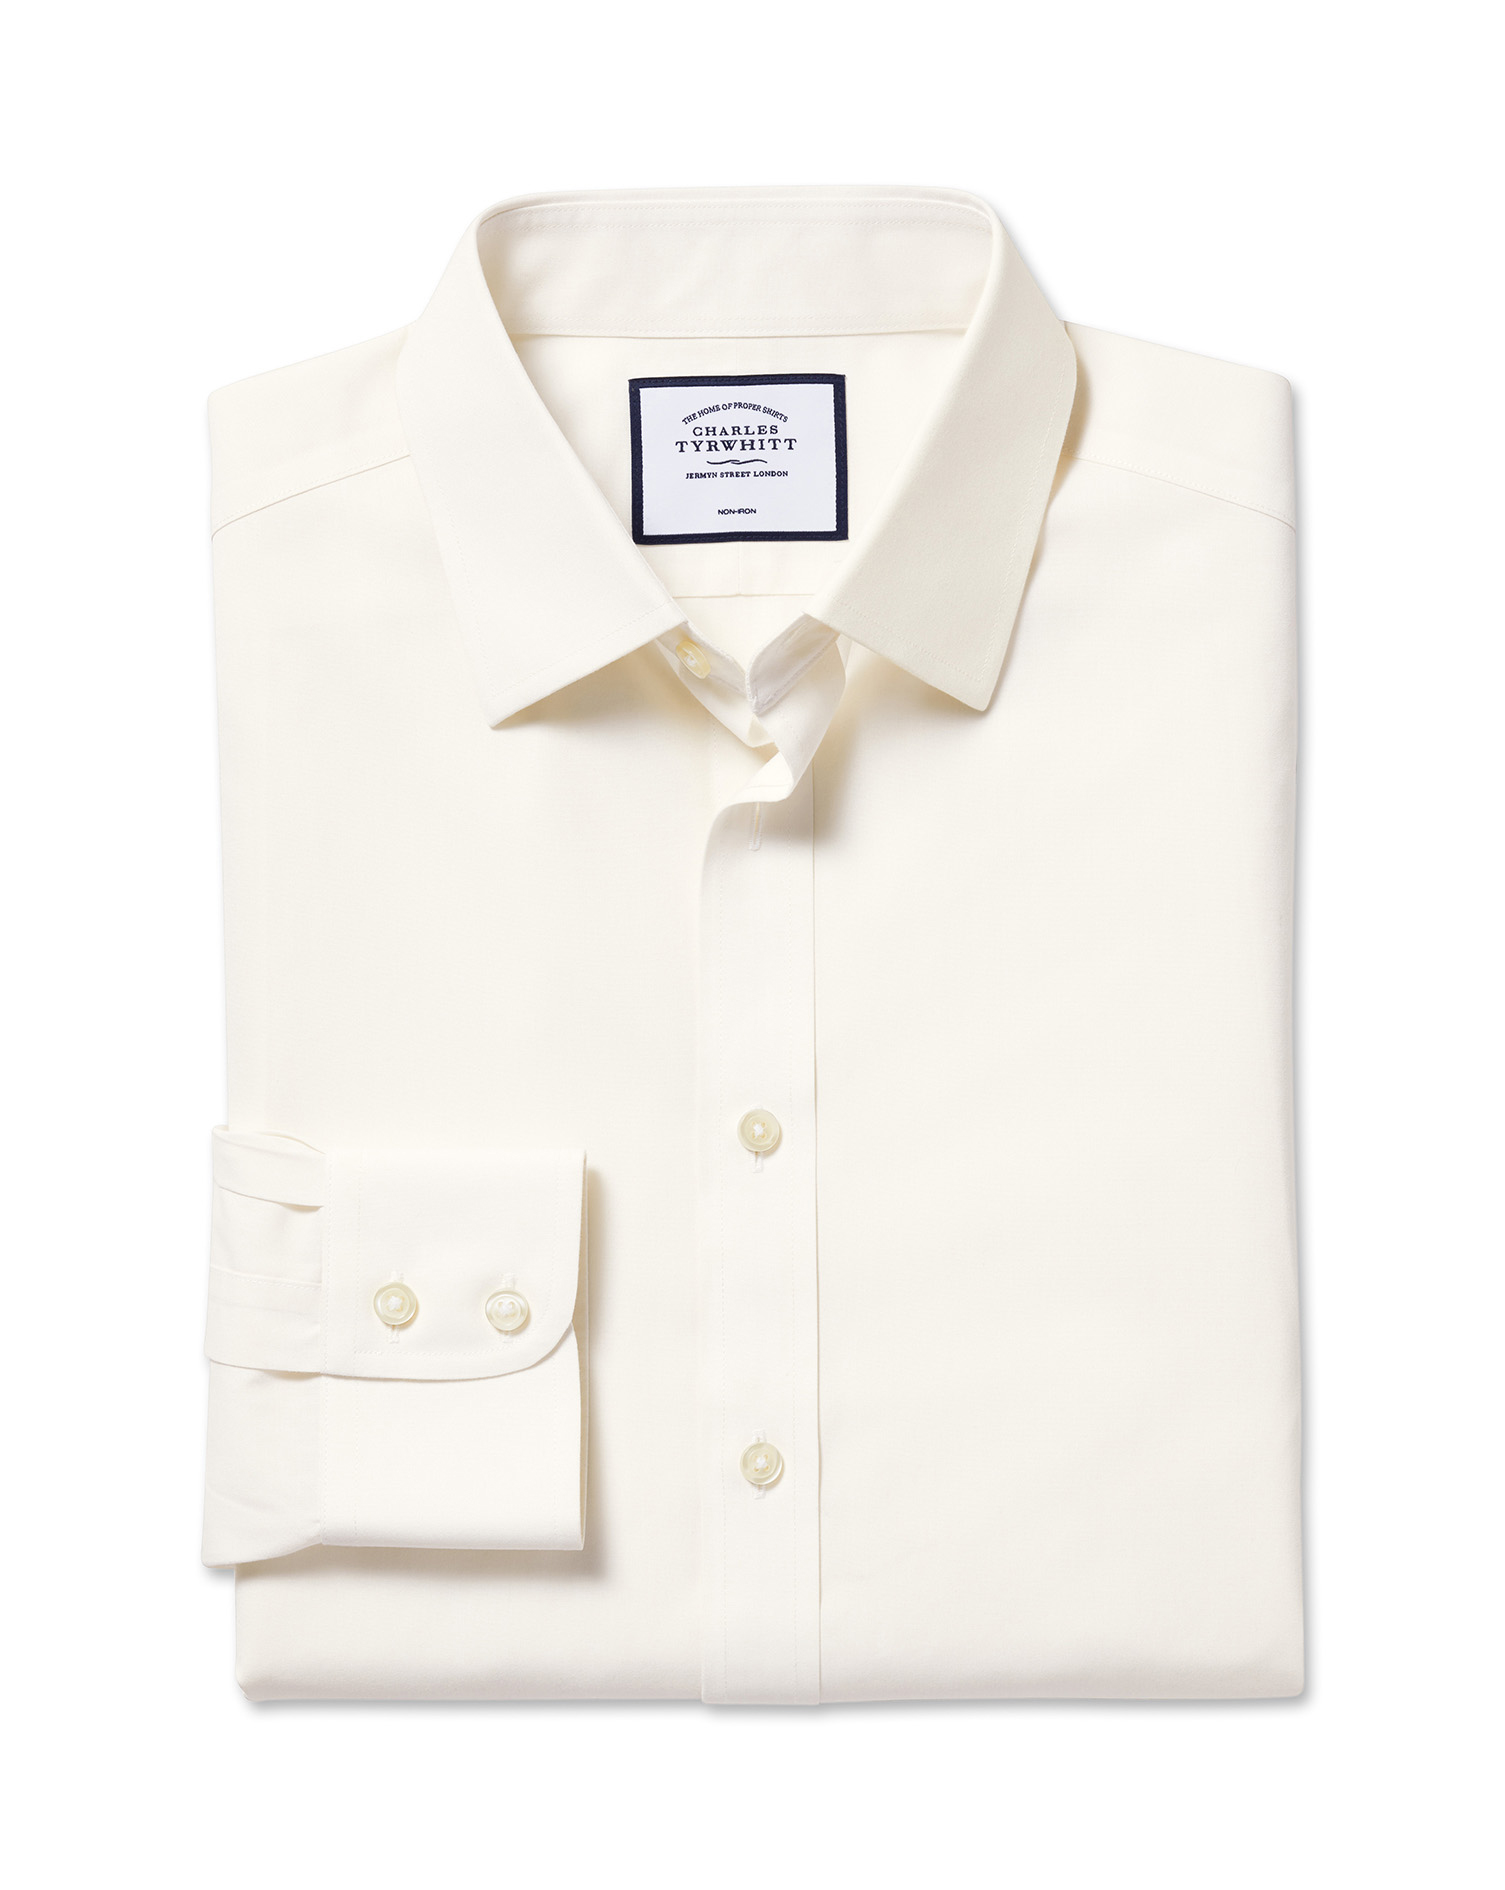 Classic Fit Non-Iron Poplin Cream Cotton Formal Shirt Double Cuff Size 15.5/35 by Charles Tyrwhitt